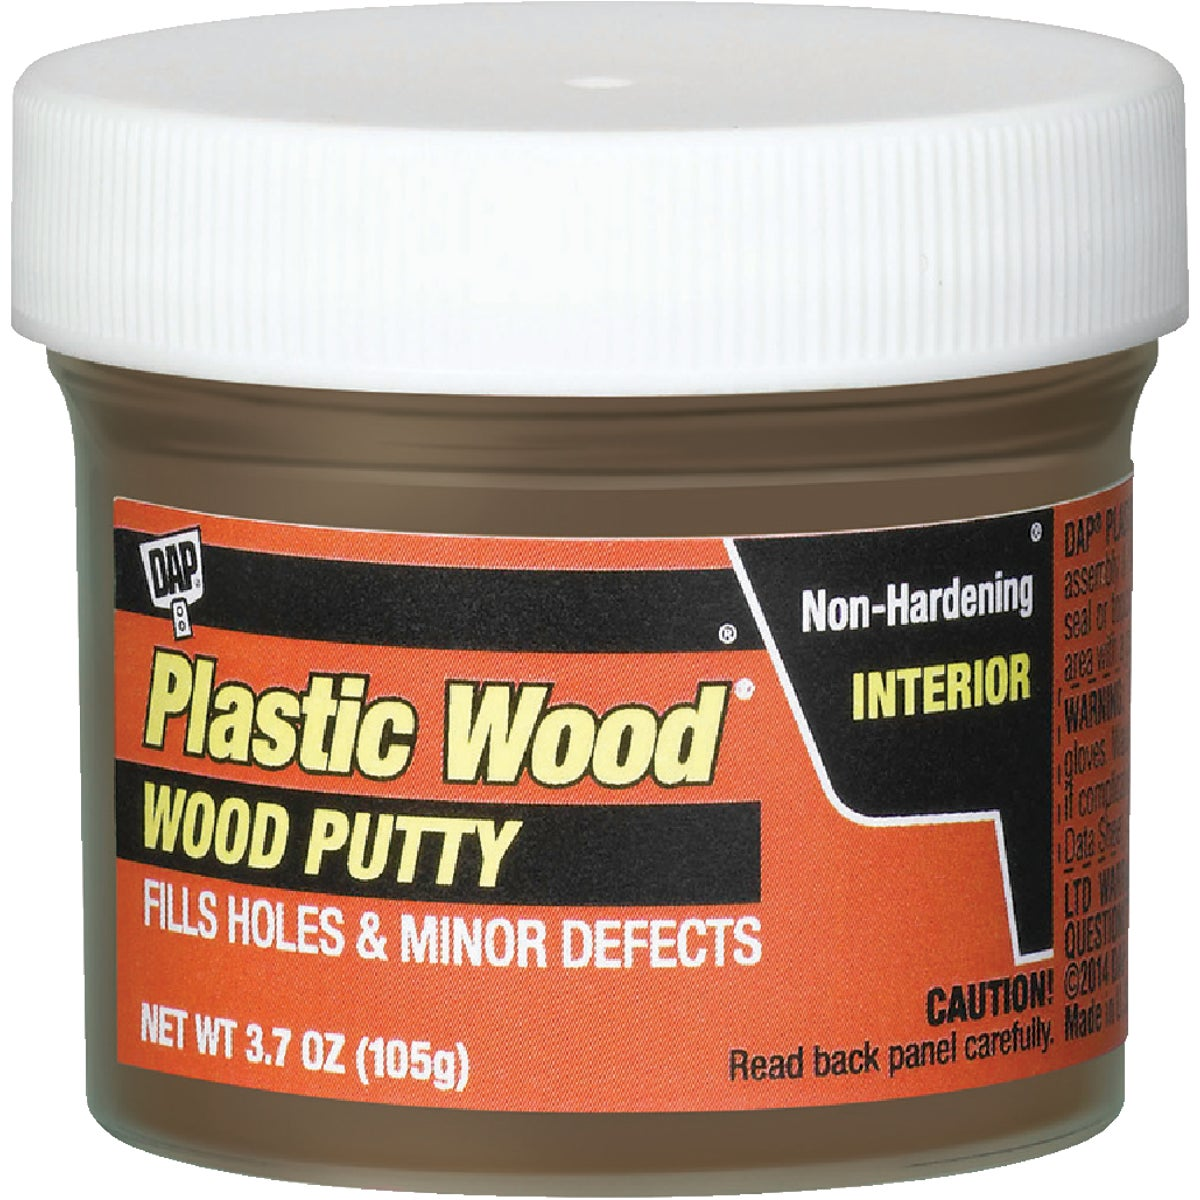 LGHT WALNUT FINISH PUTTY - 21251 by Dap Inc